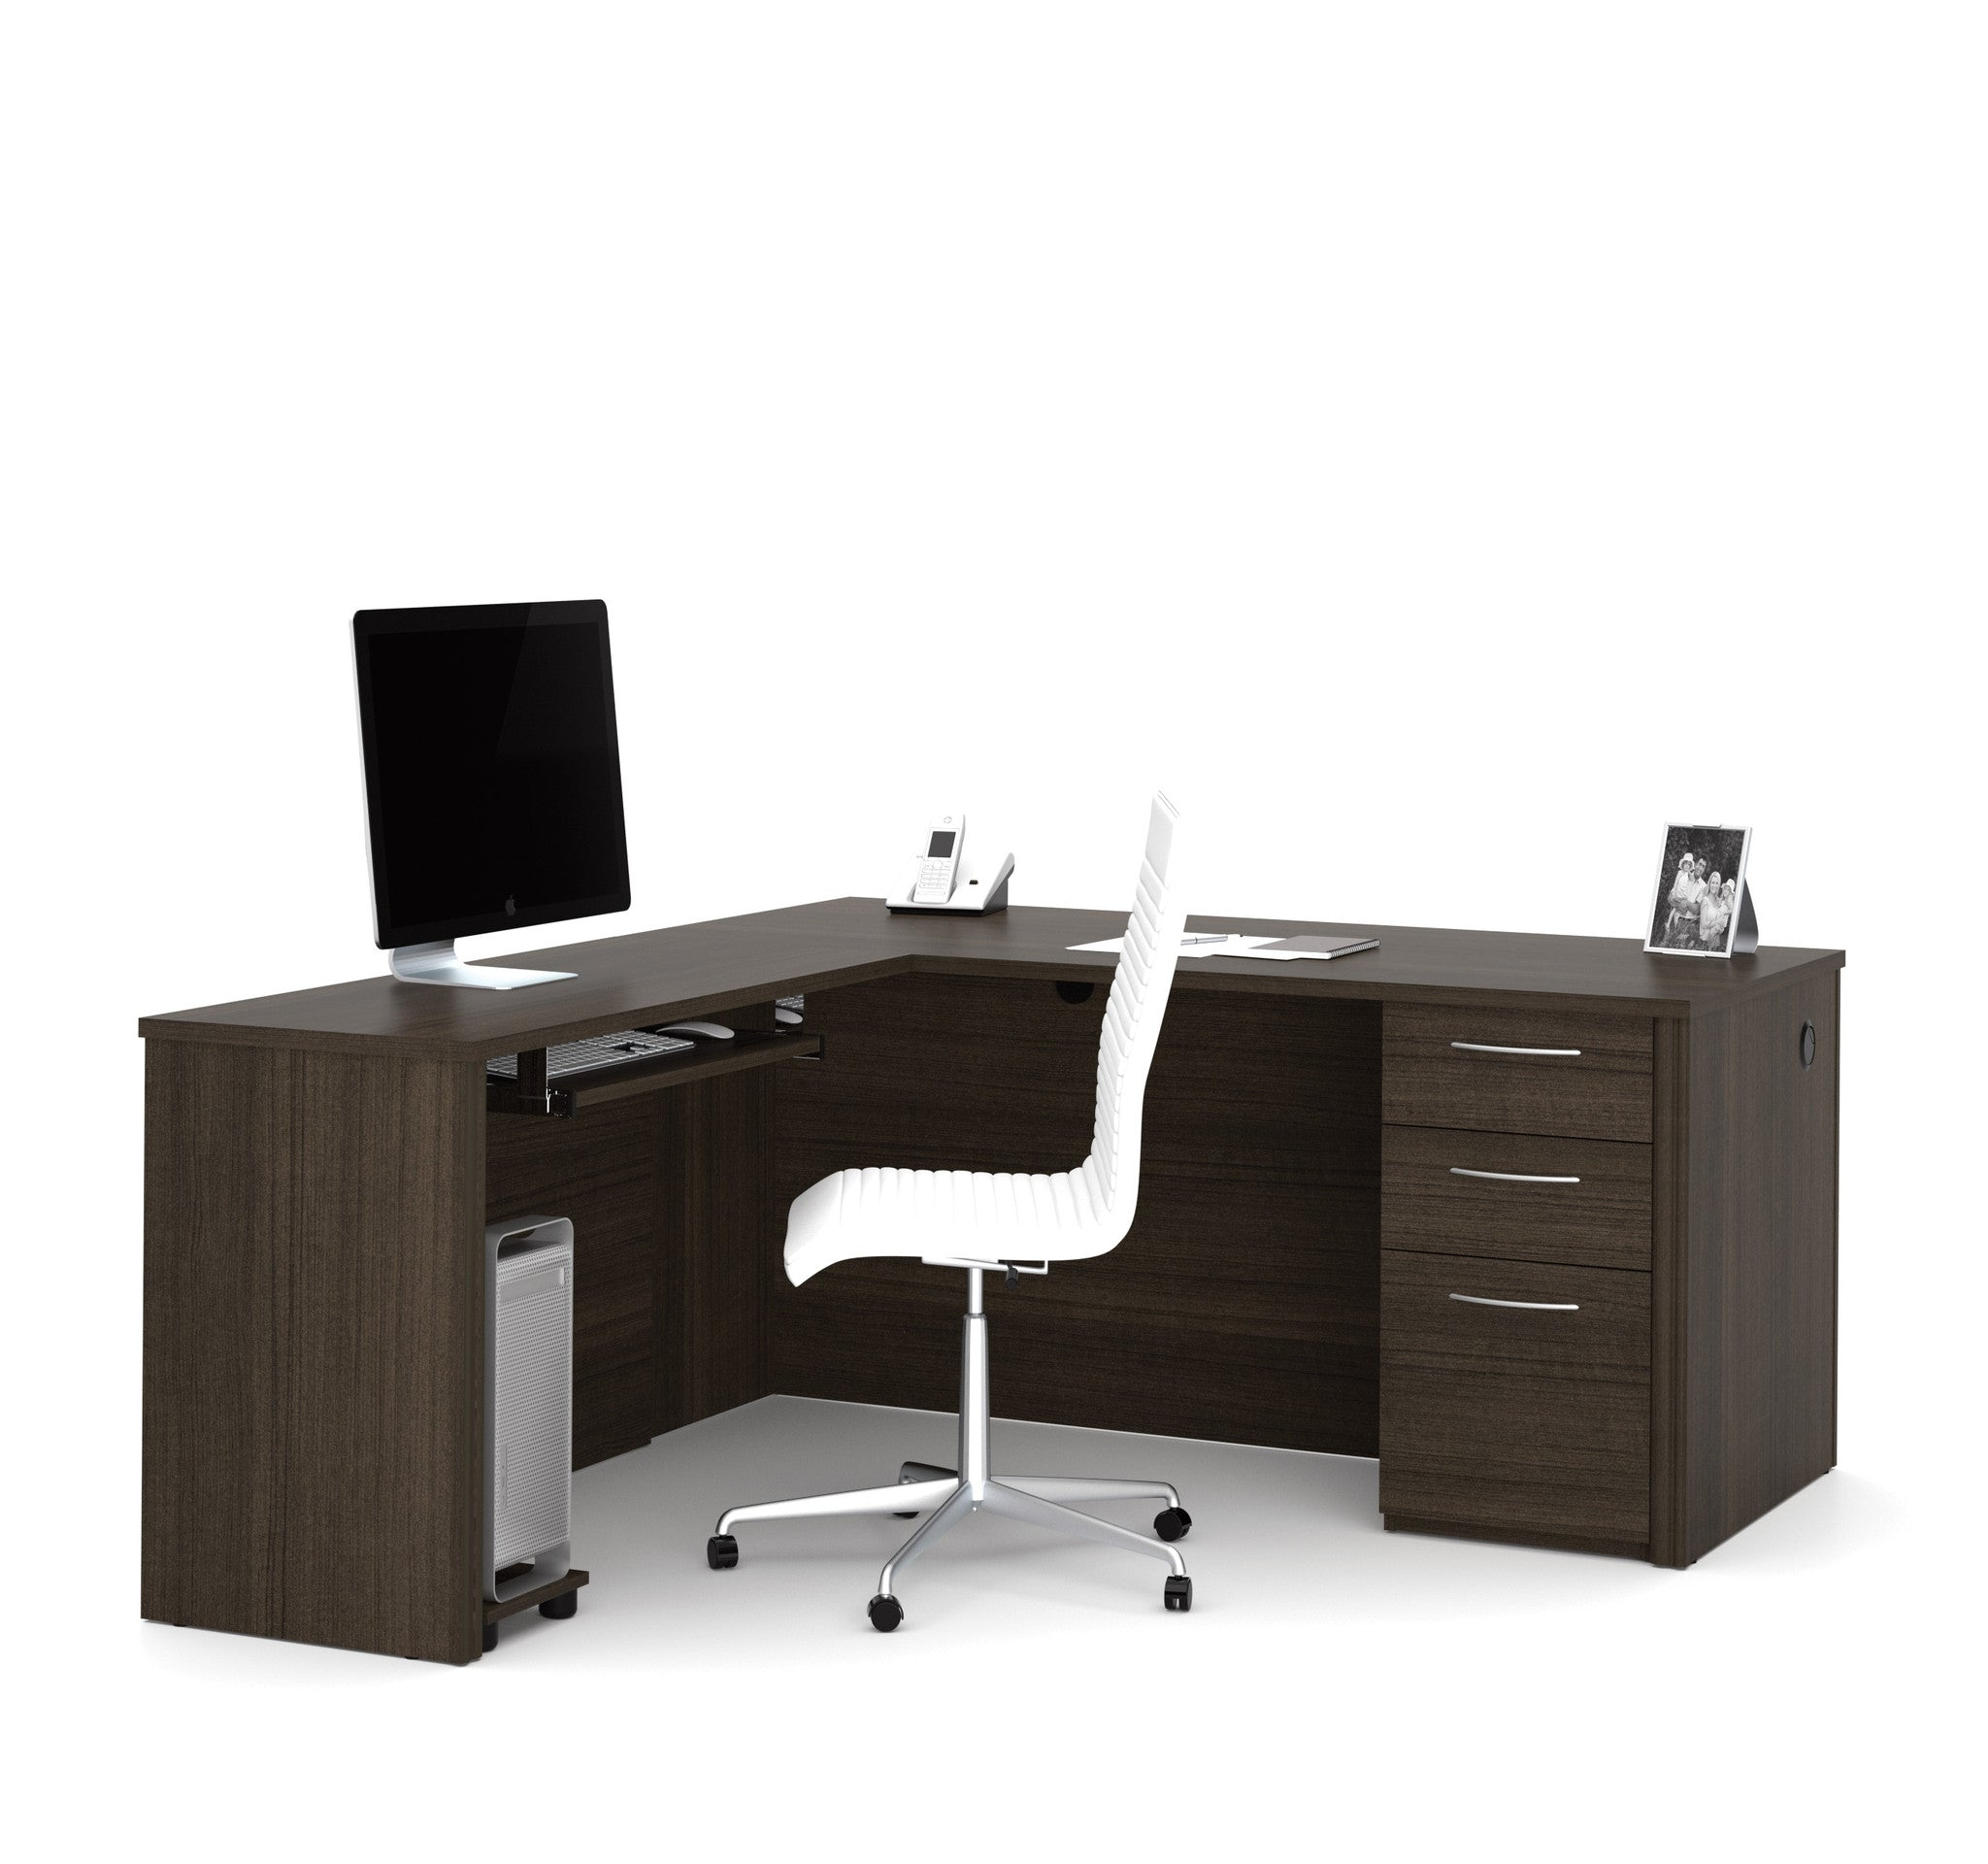 Premium Modern L-Shaped Desk in Dark Chocolate